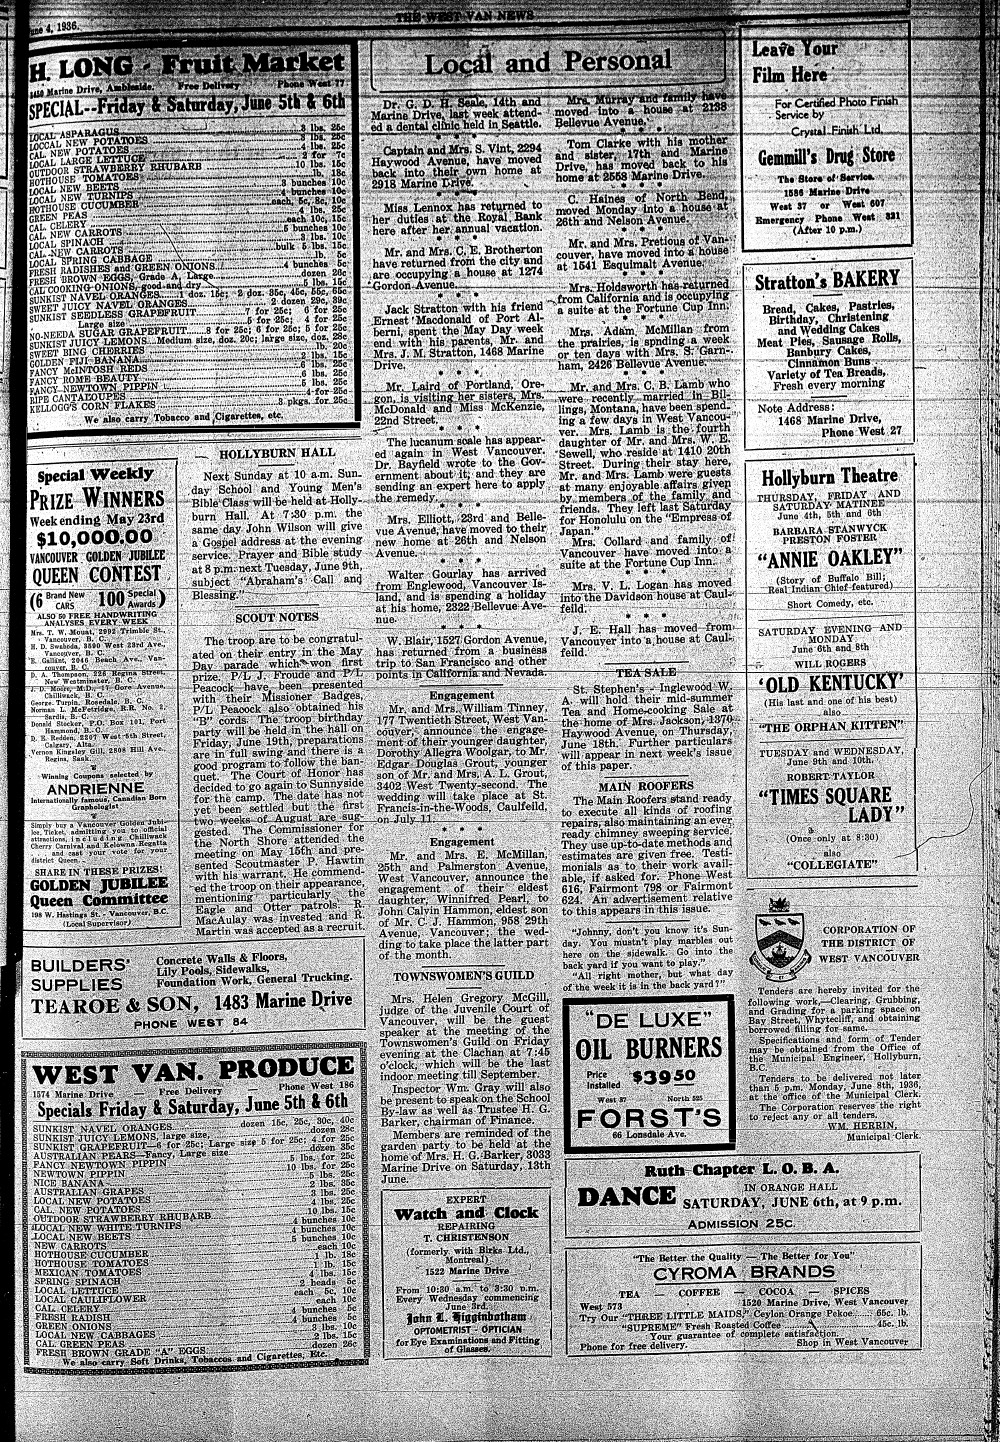 West Van. News (West Vancouver), 4 Jun 1936